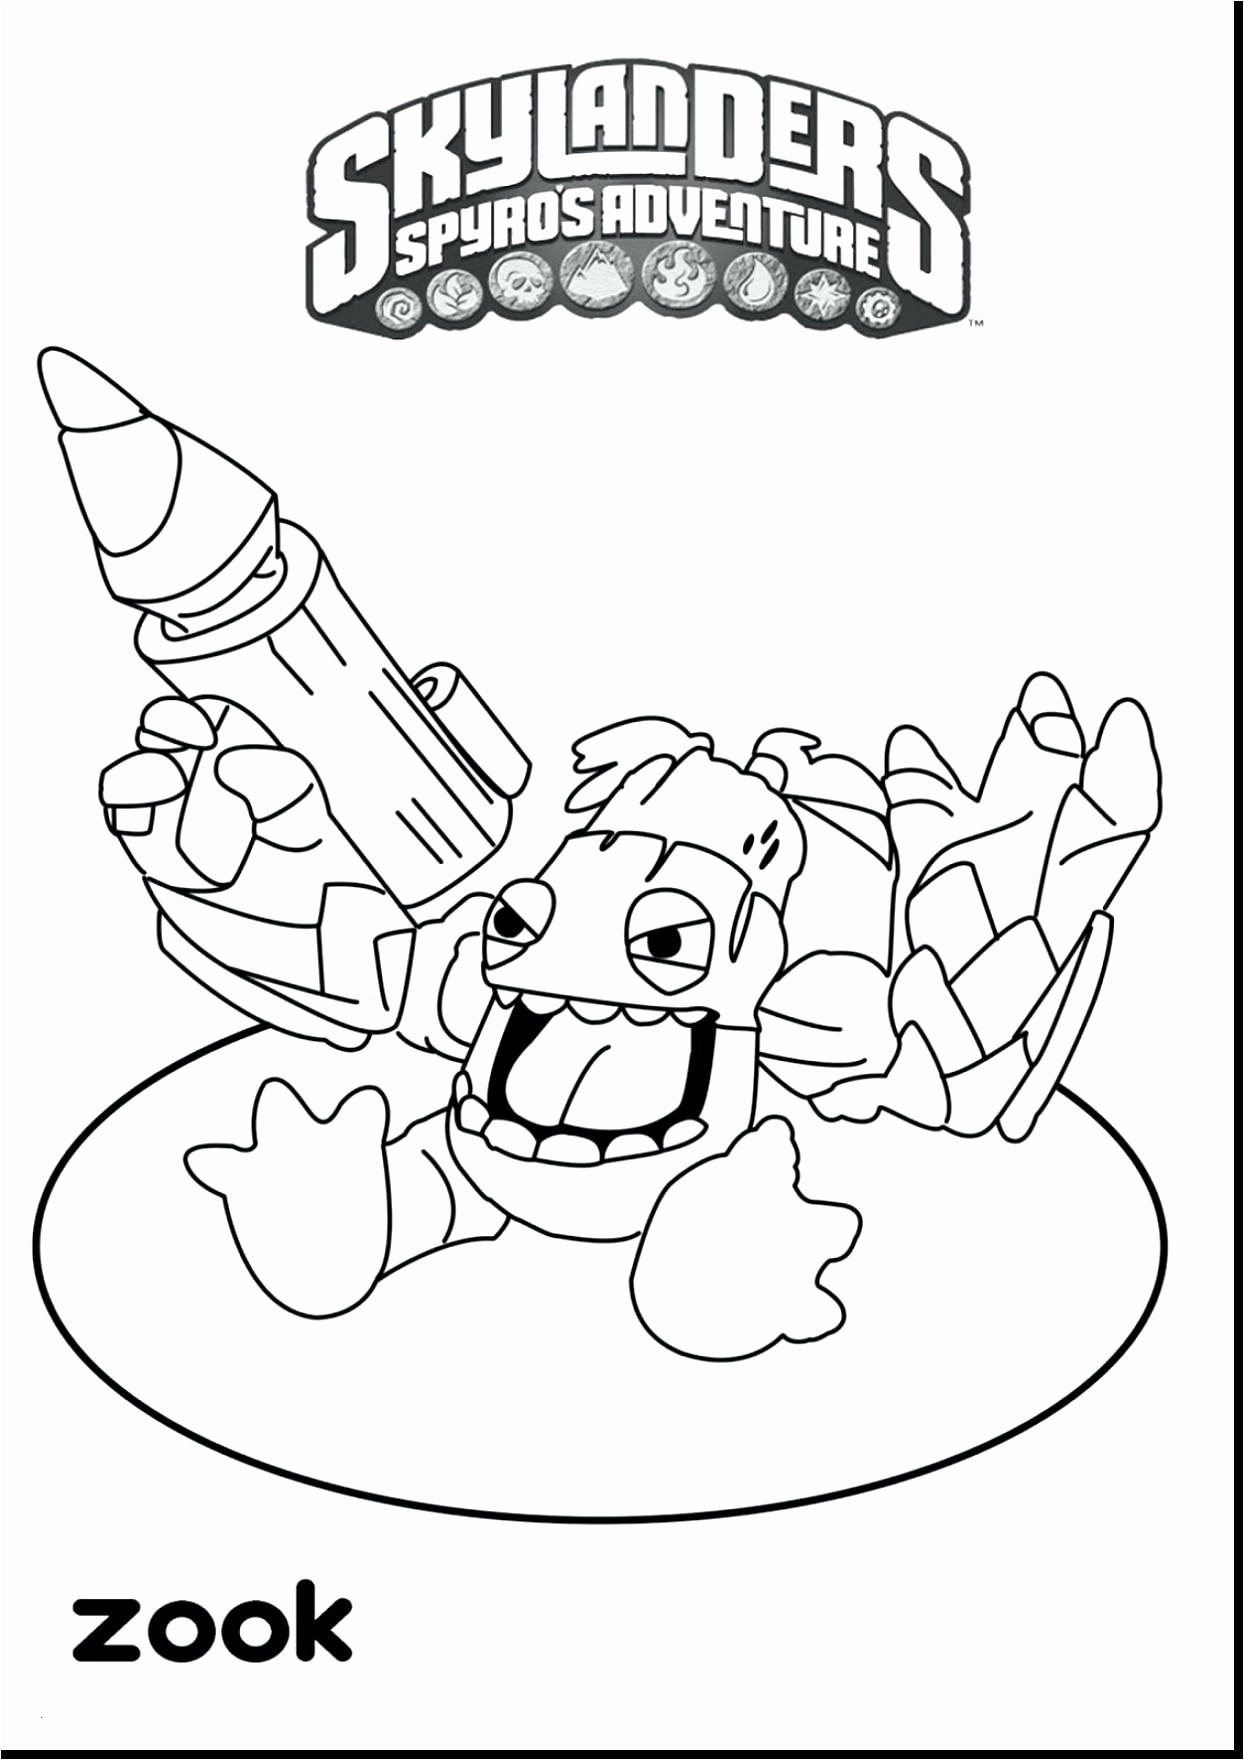 Jesus Temptation Coloring Pages  to Print 10b - To print for your project